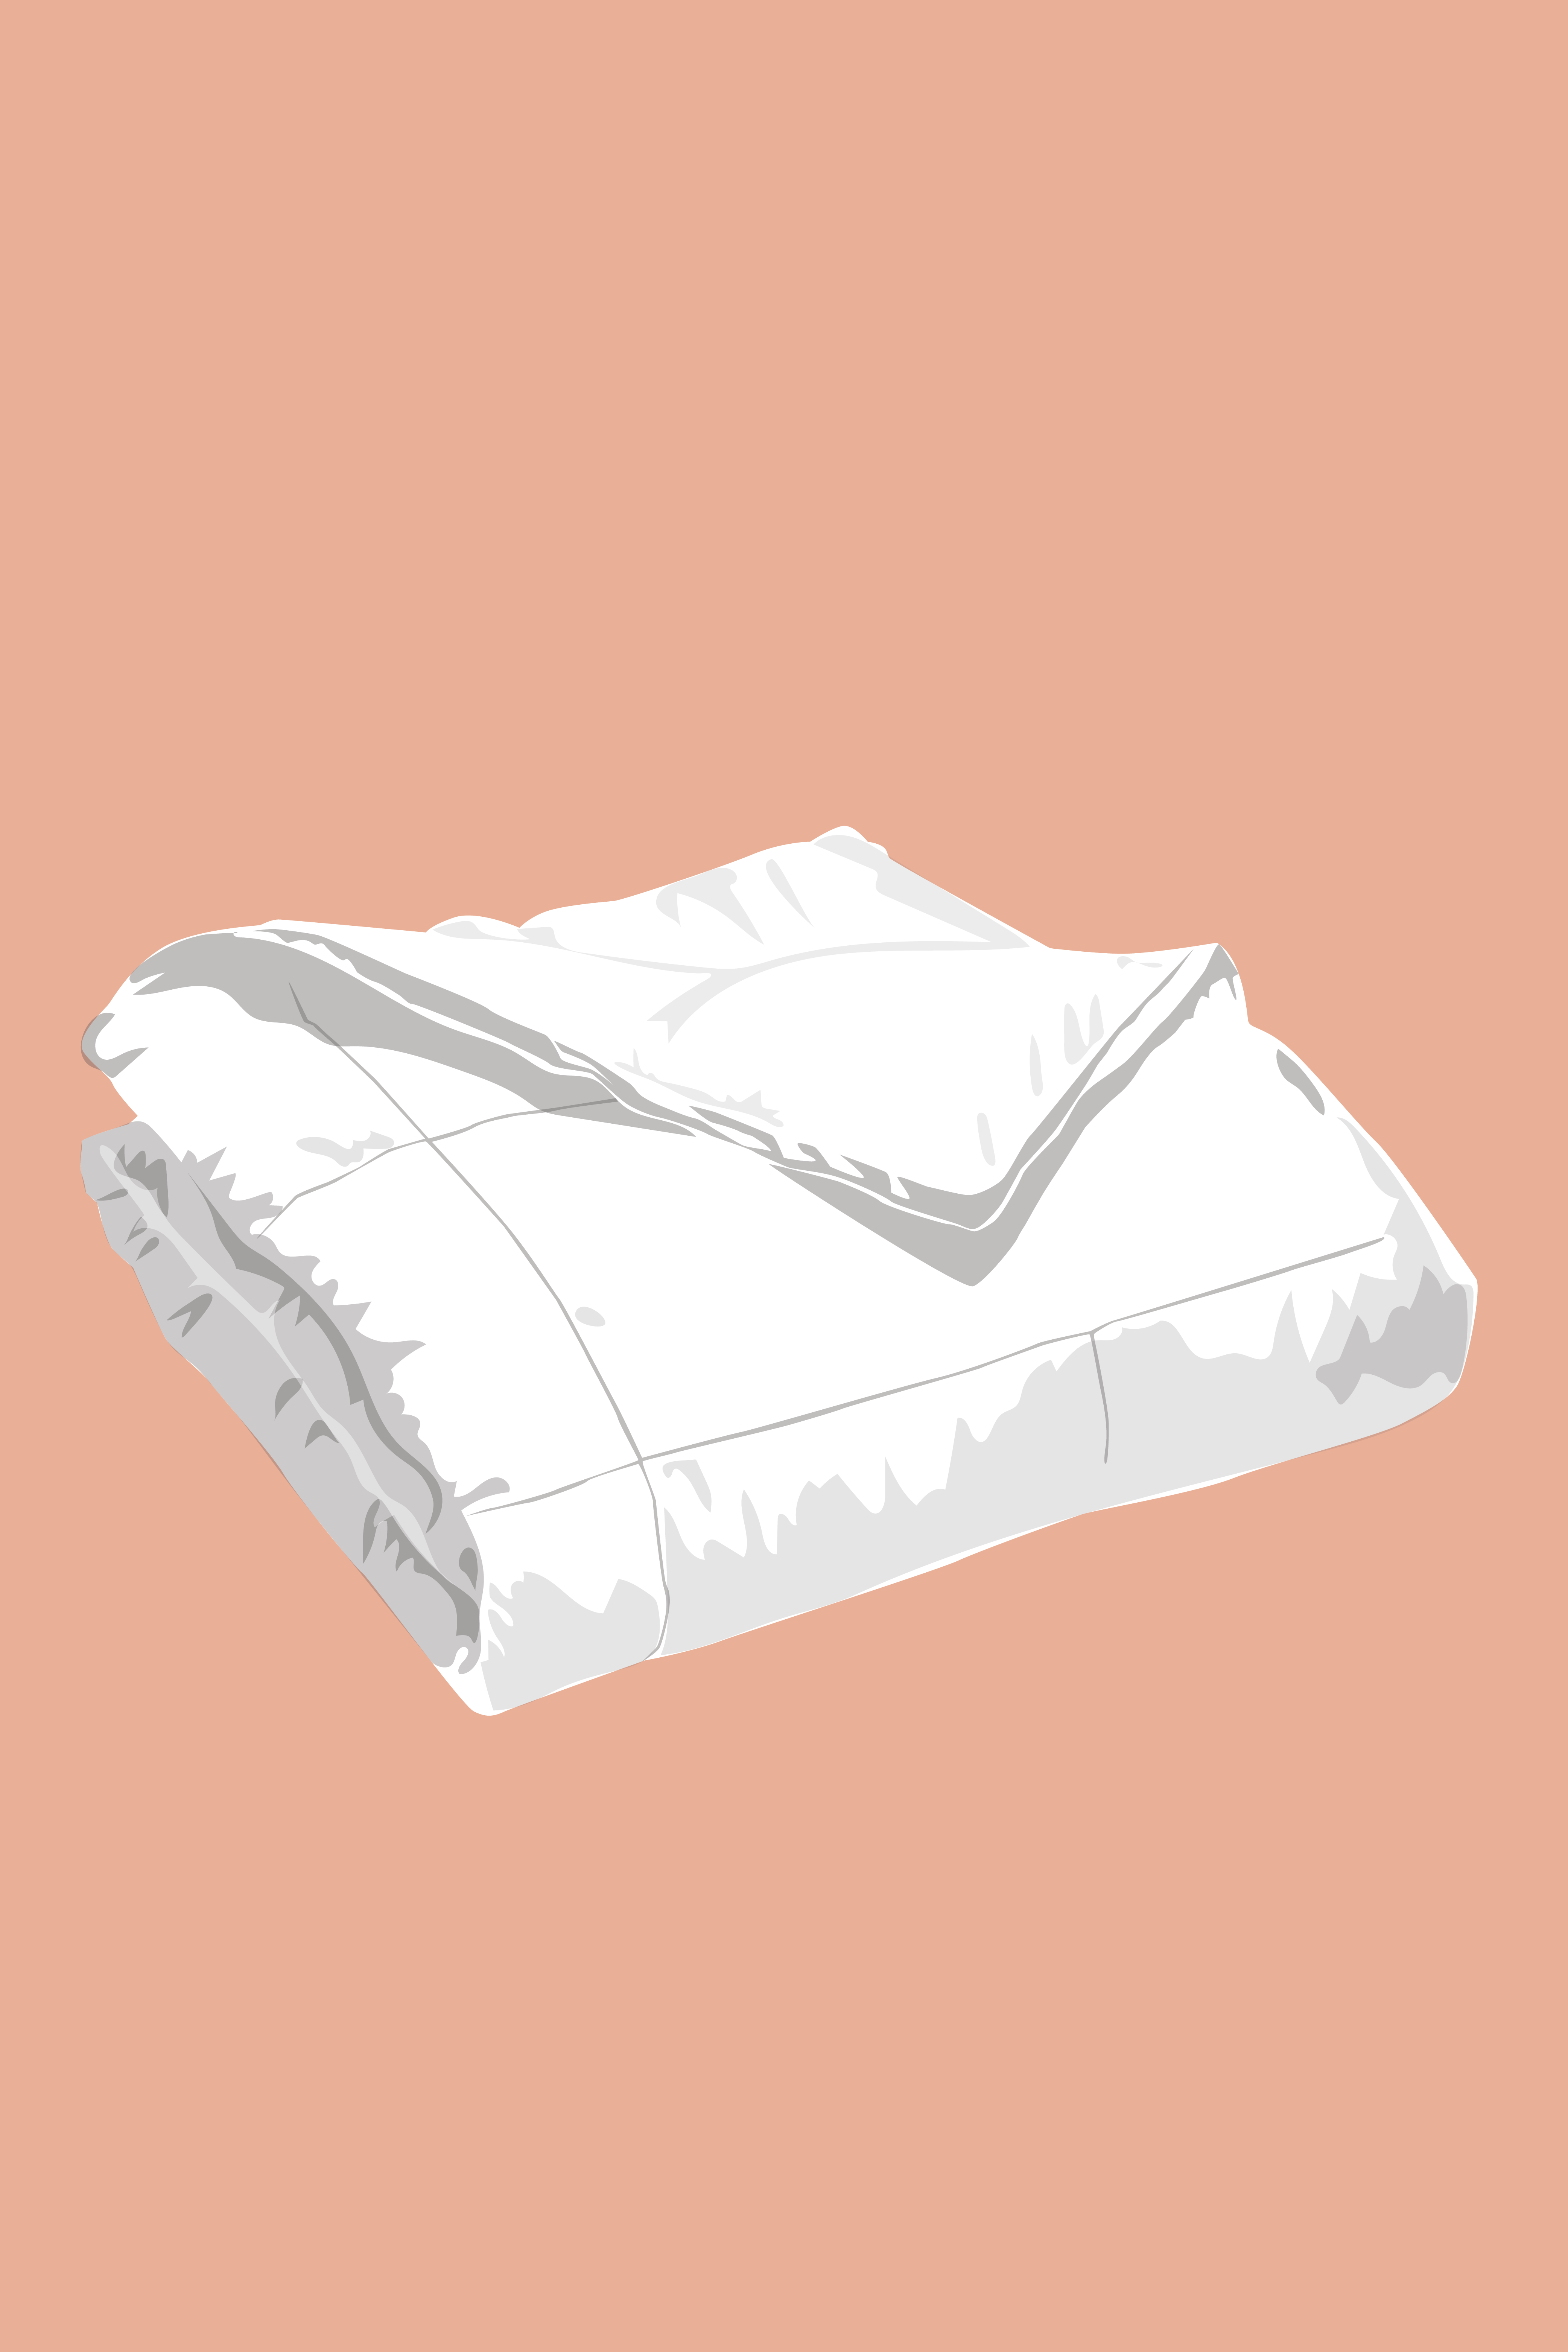 How Often To Wash Bed Sheets 28 Images How To Wash Bedding Clean Pillows Persil How Often